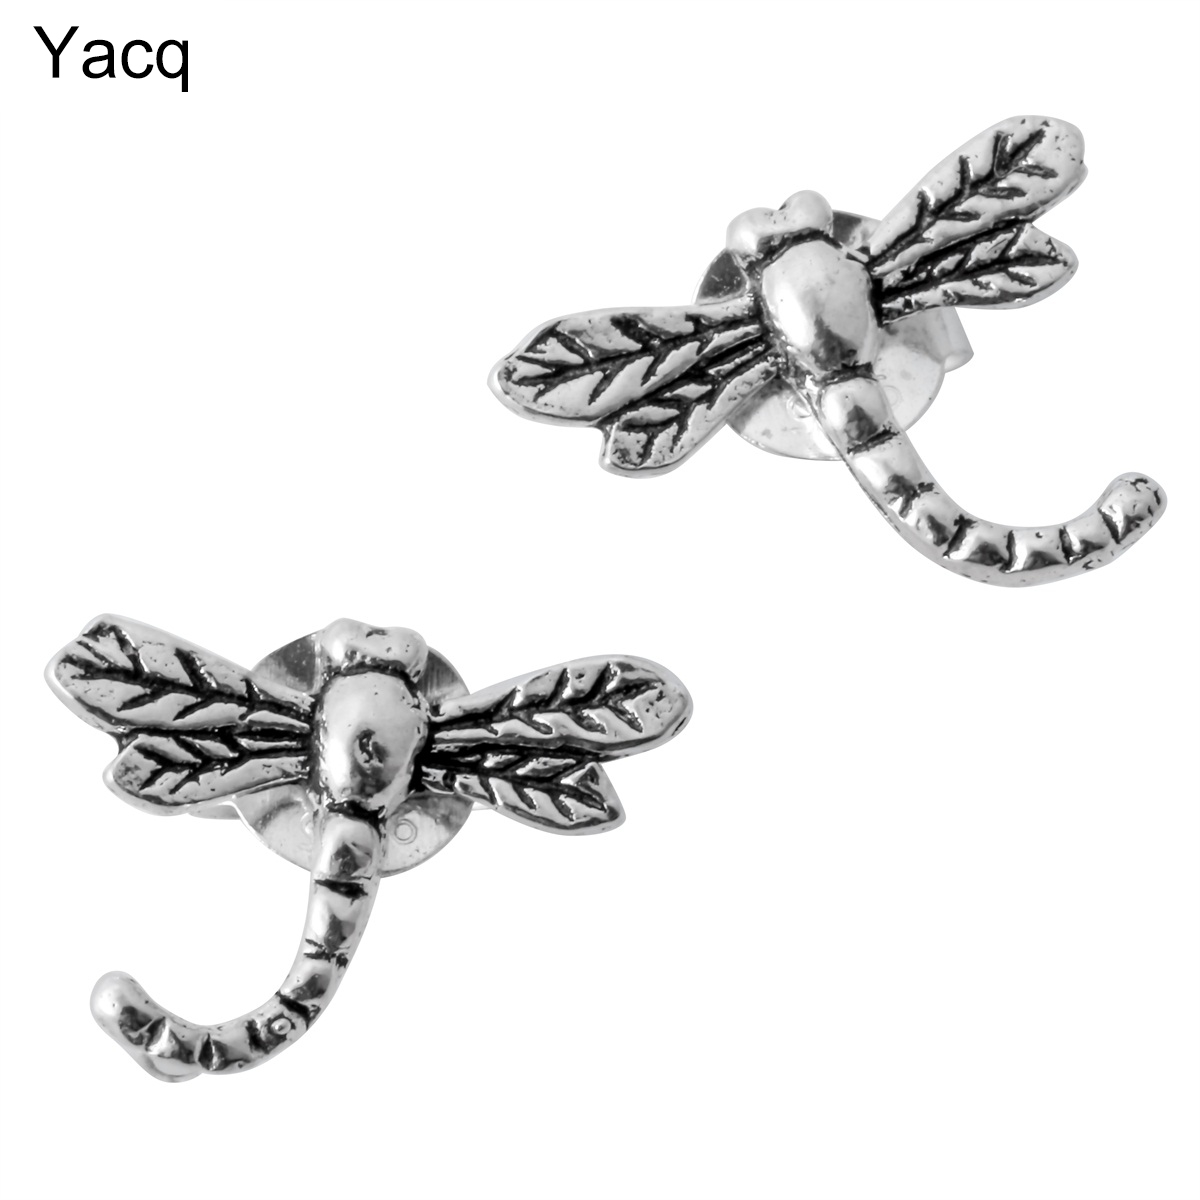 925 Sterling silver dragonfly stud earrings animal costume charm fashion jewelry gifts for women girls her dropshipping YCE30A